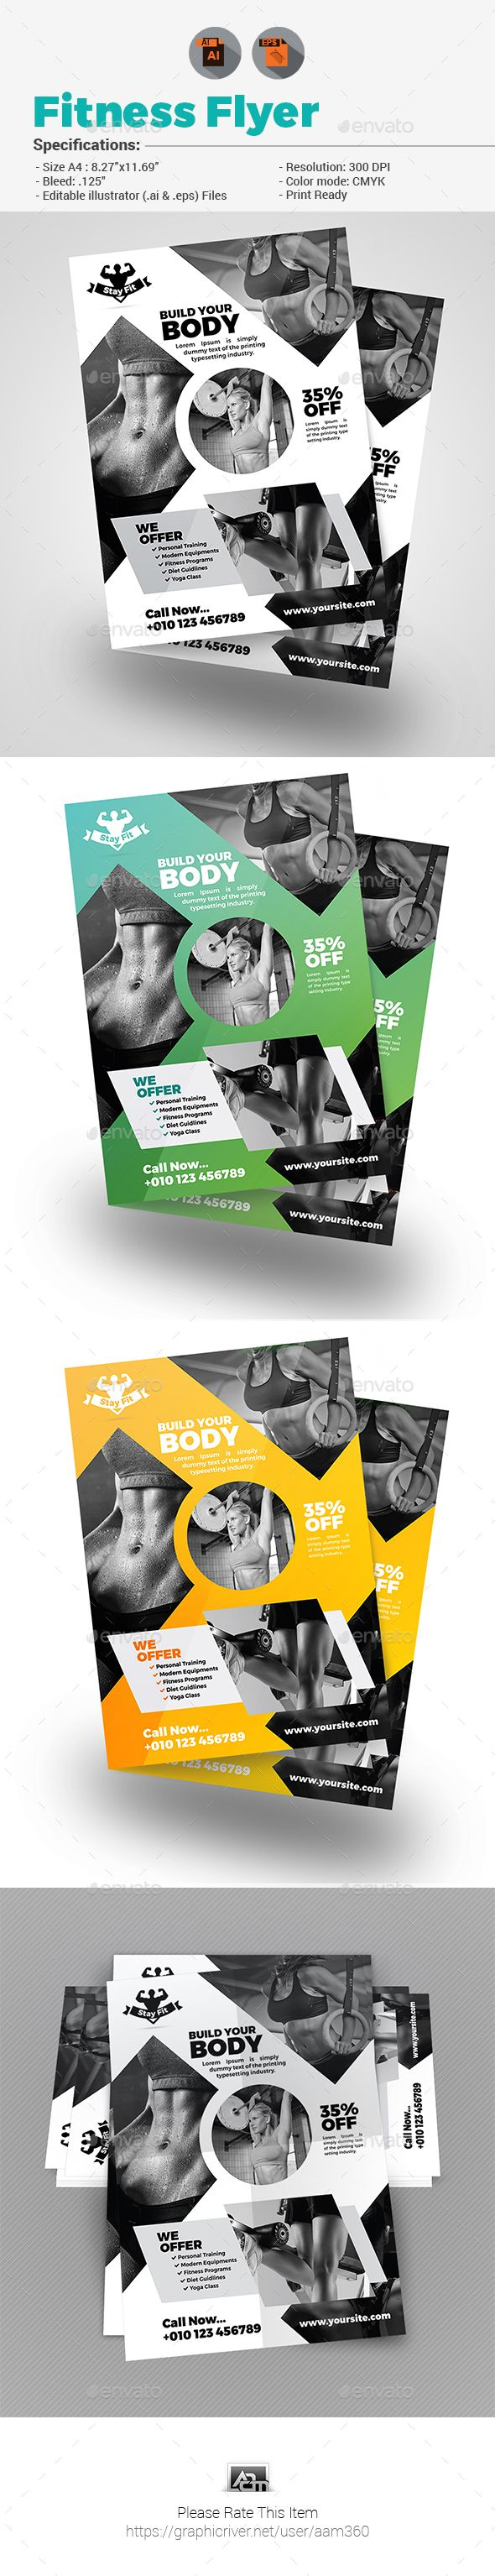 #Fitness #Flyer - #Corporate Flyers Download here: https://graphicriver.net/item/fitness-flyer/19469564?ref=alena994